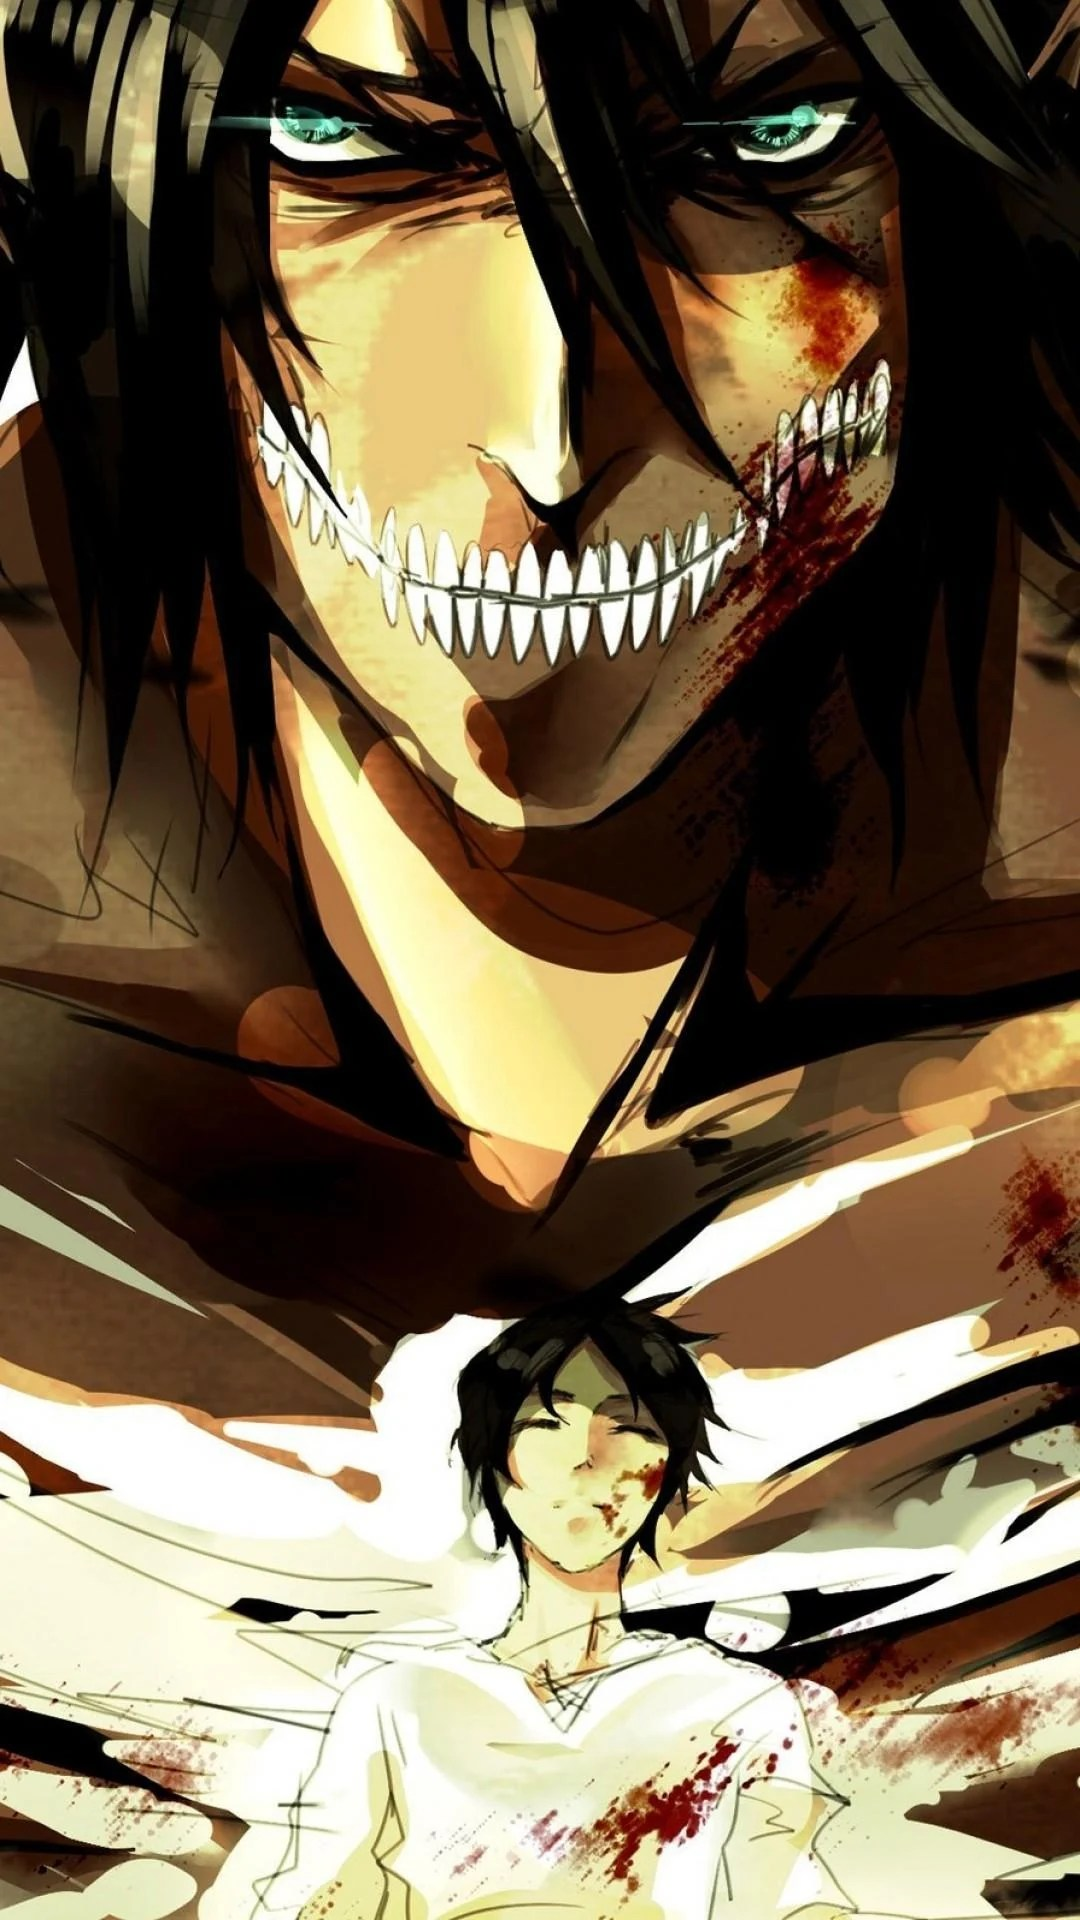 Attack on titan wallpaper, is a new kind of artistic atmosphere. Attack On Titan Eren Yeager Wallpapers - Wallpaper Cave